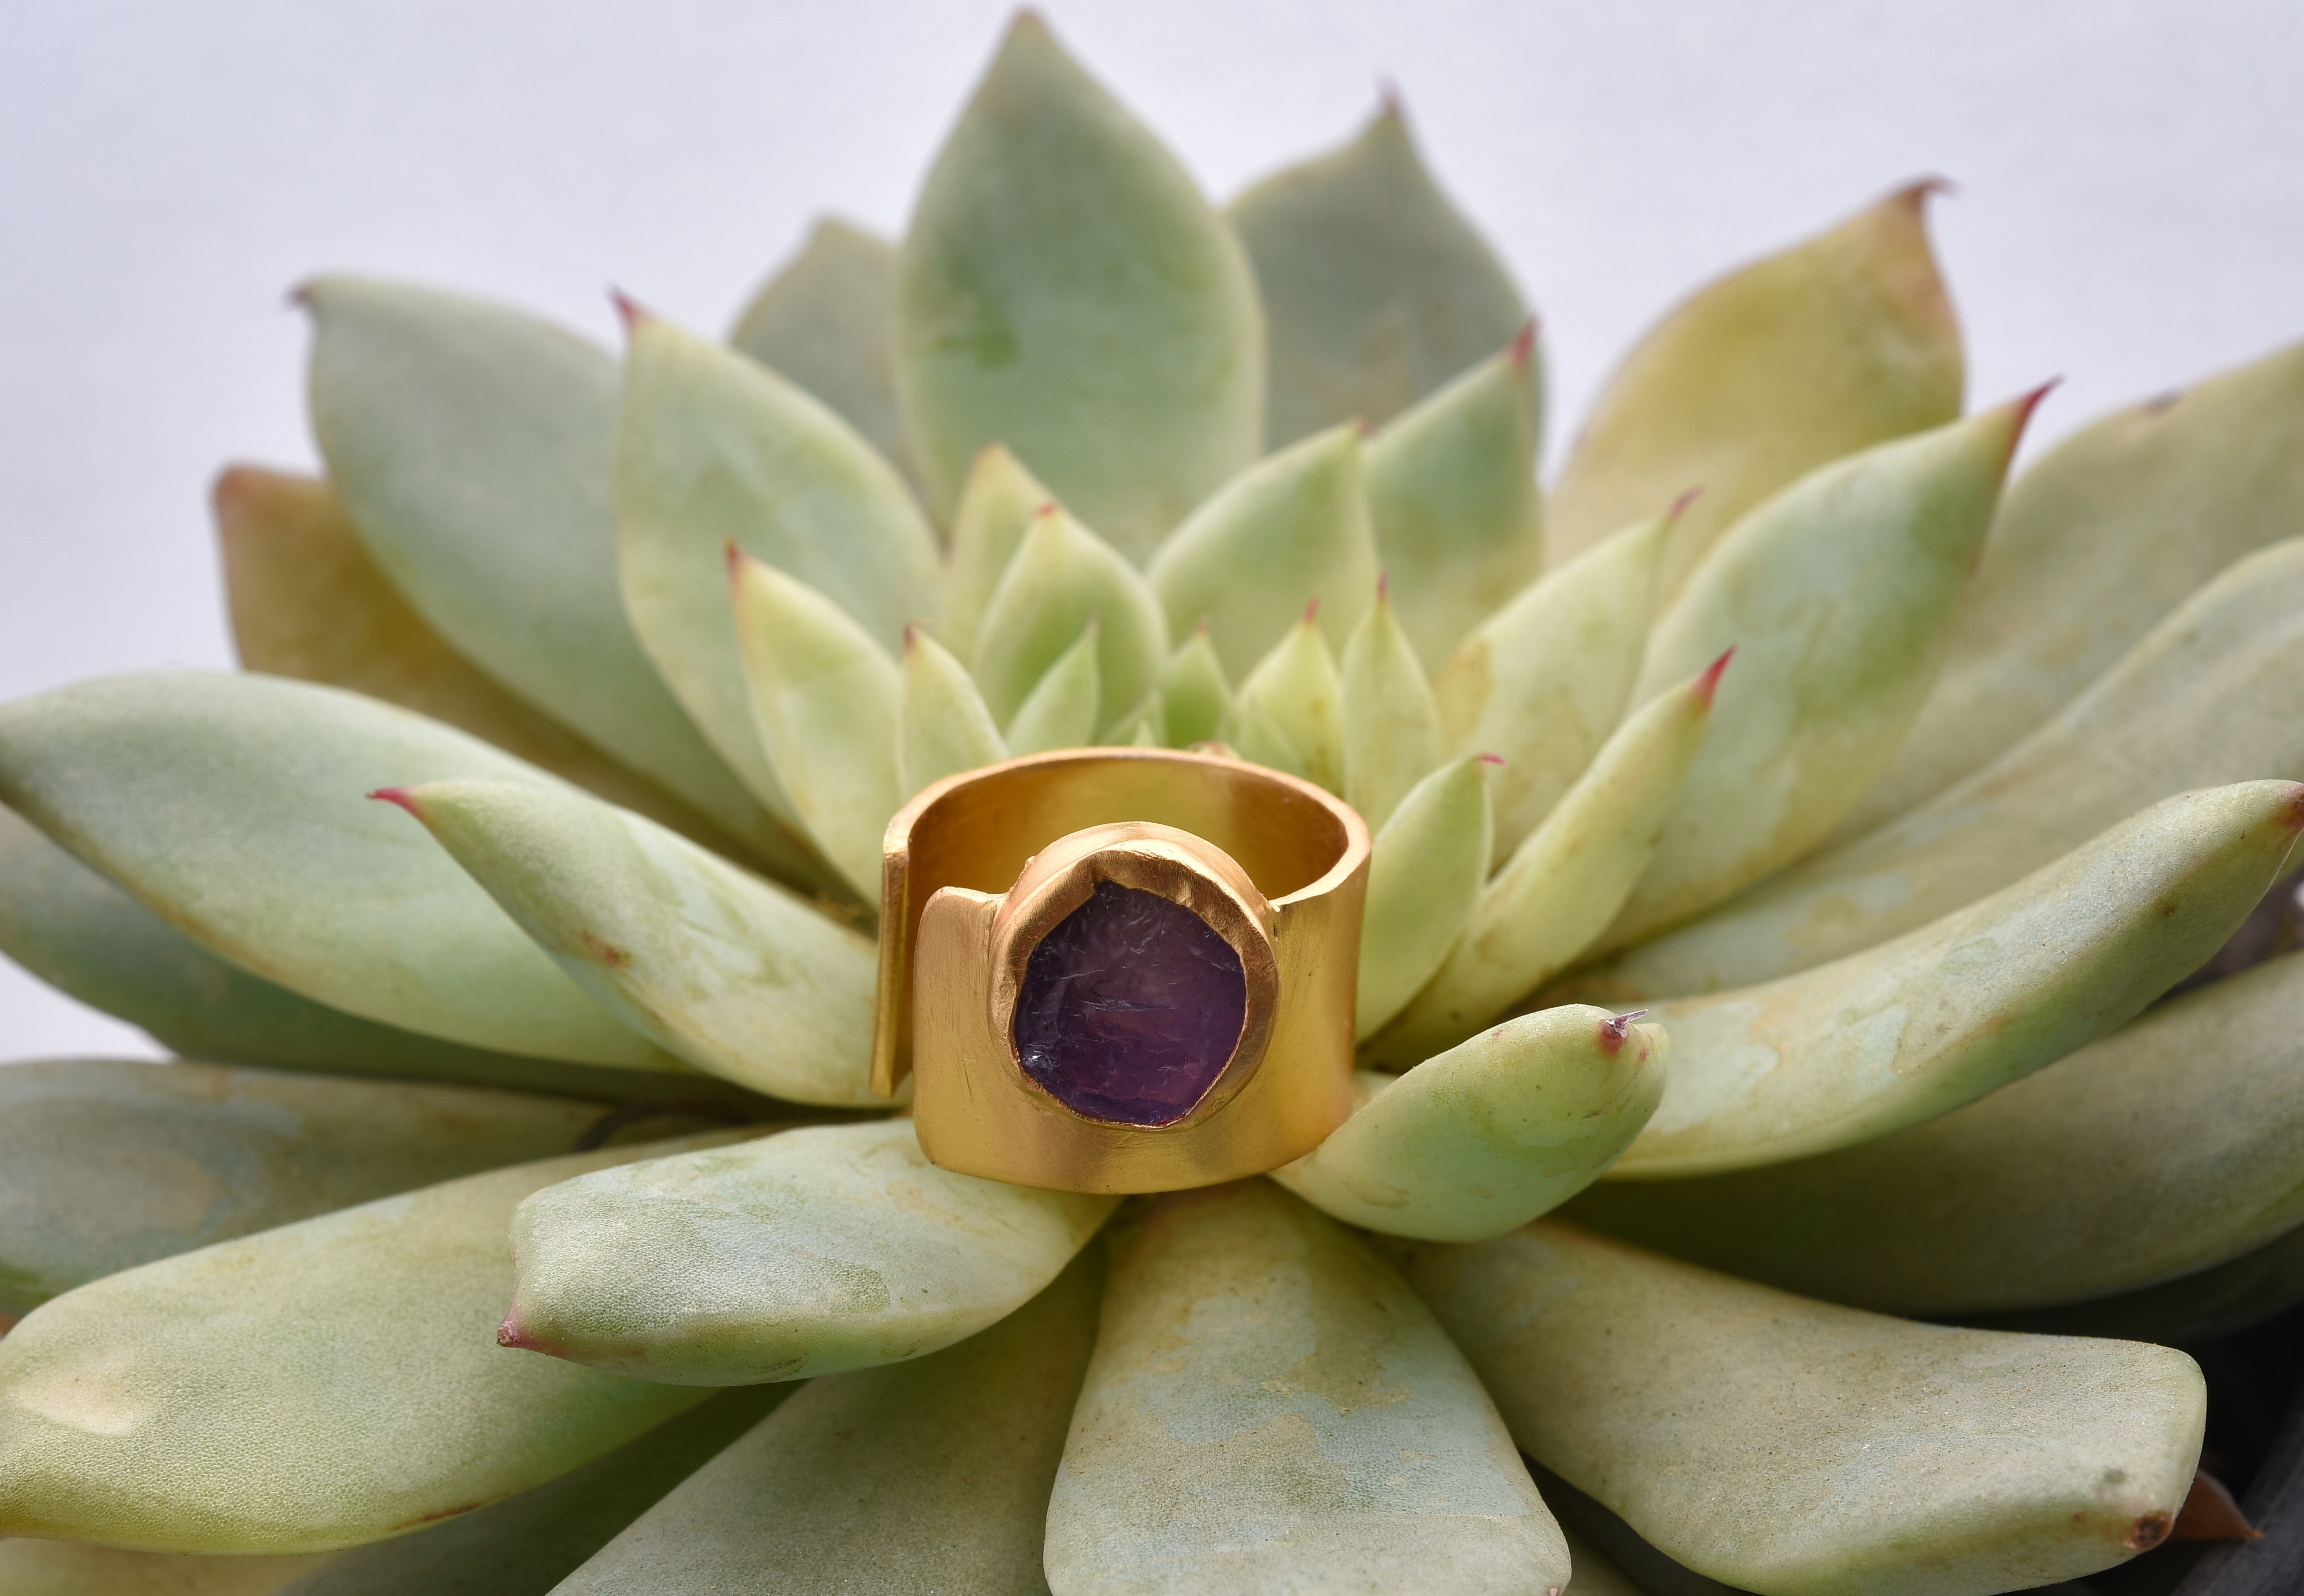 Amethyst - For the love of purple!